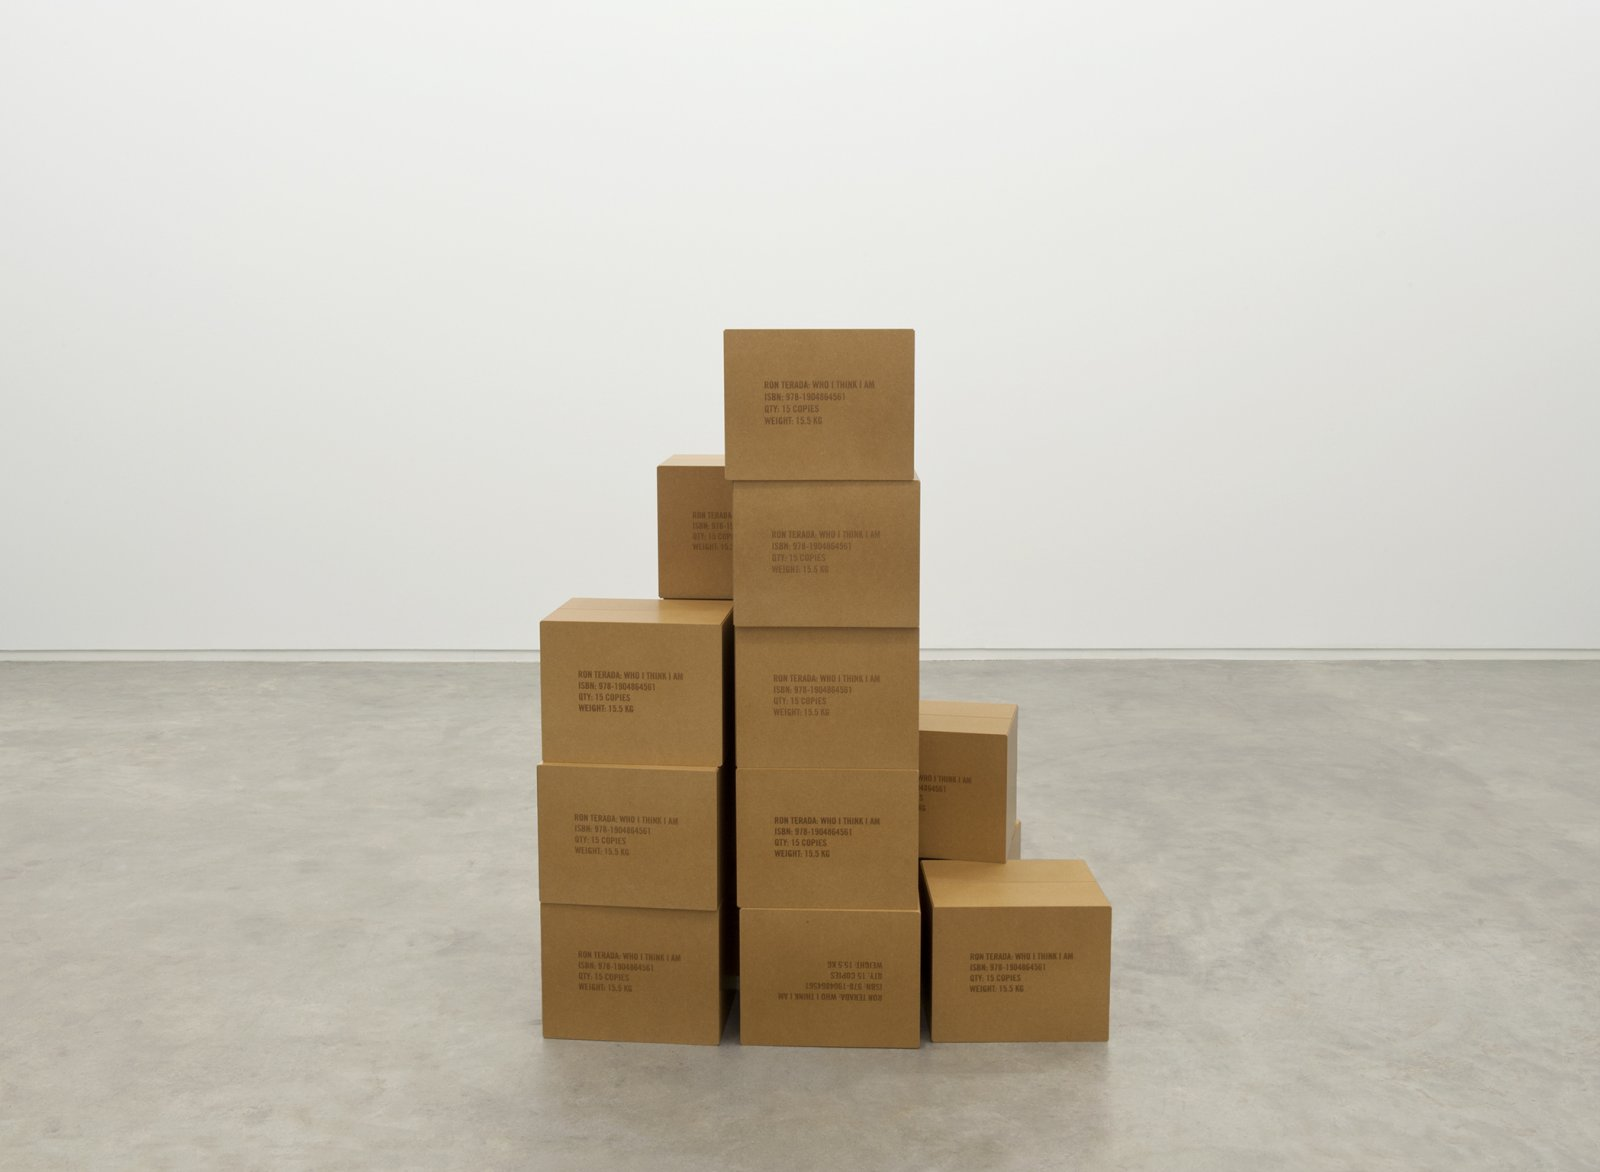 Ron Terada, Who I Think I Am, 2011, 15 MDF boxes, varnish, each 10 x 13 x 11 in. (26 x 33 x 27 cm) by Ron Terada